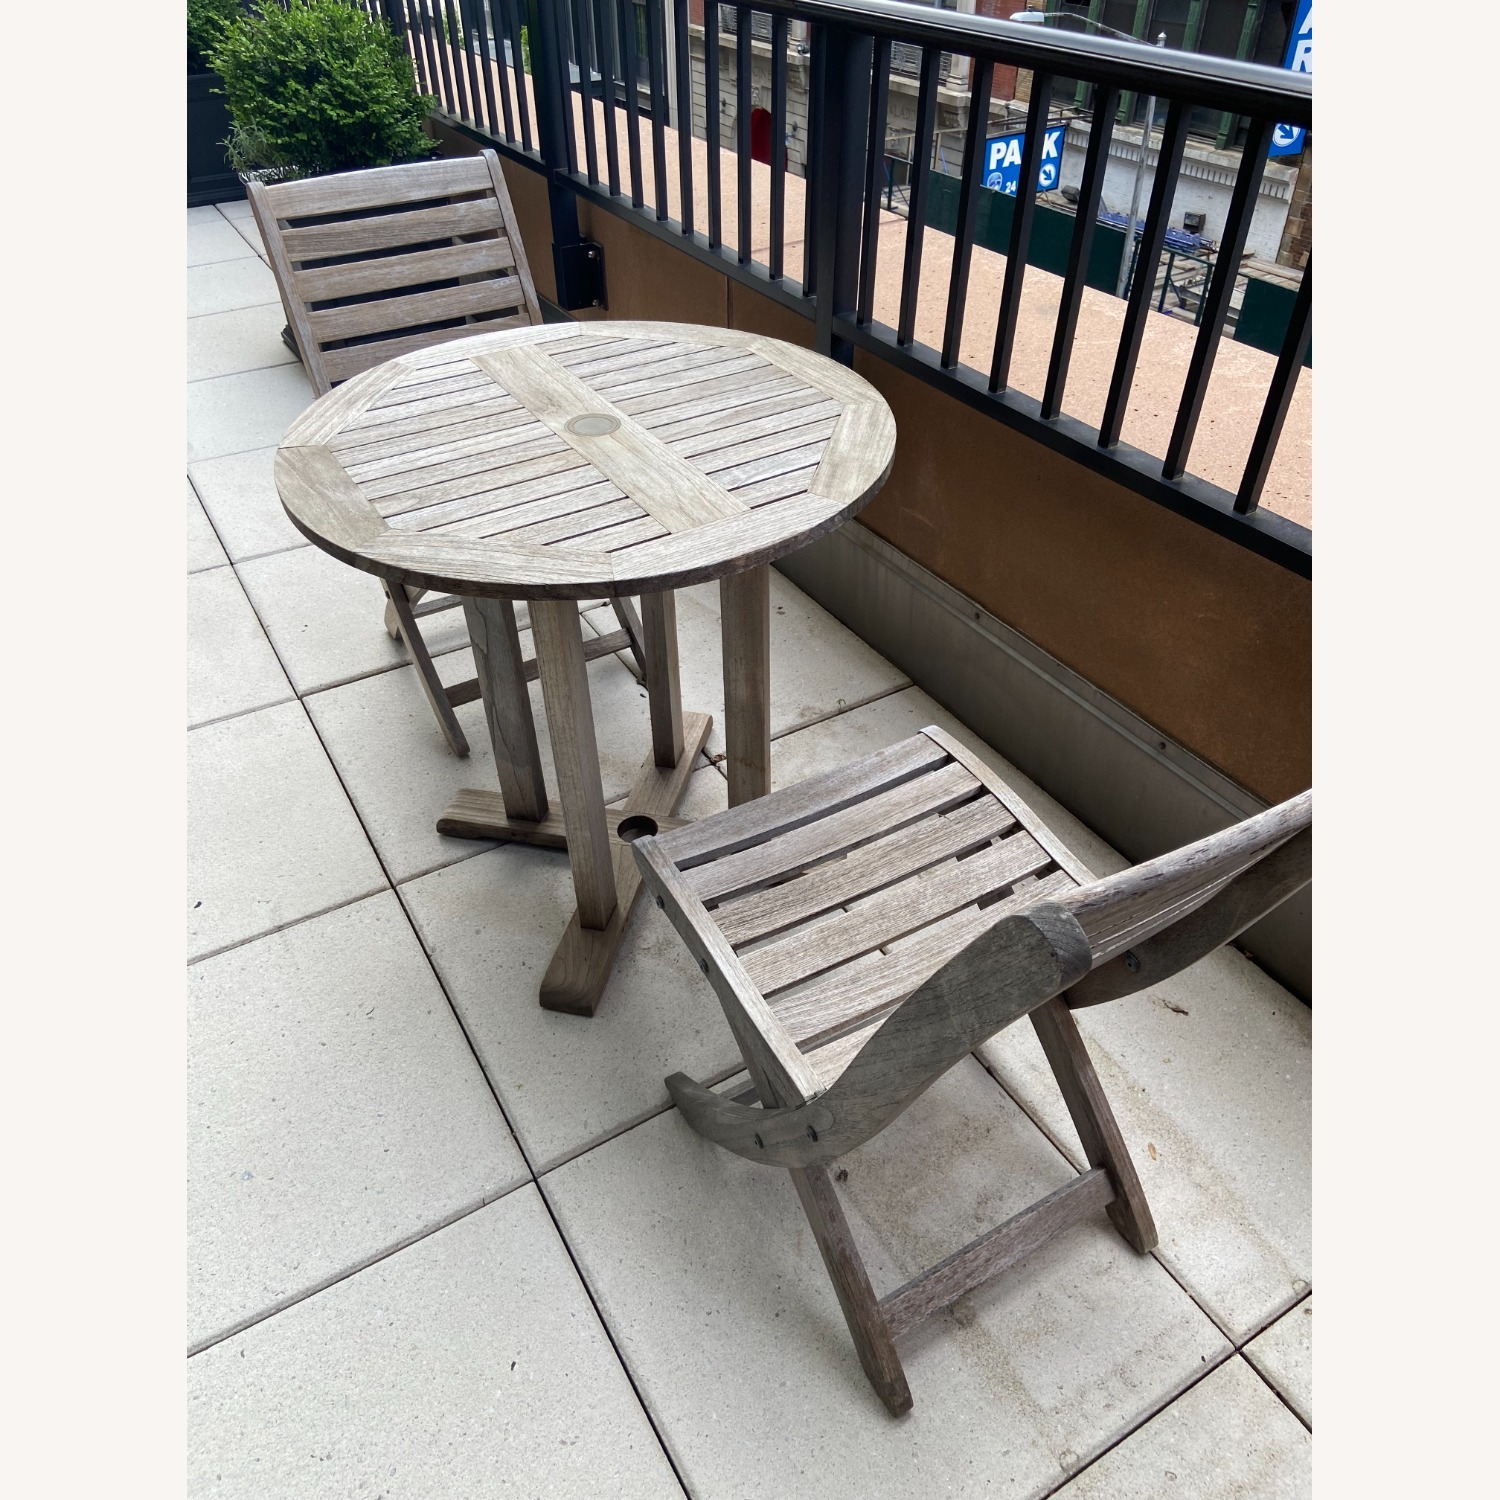 RockWood Outdoor Cafe Table and Chairs - image-1